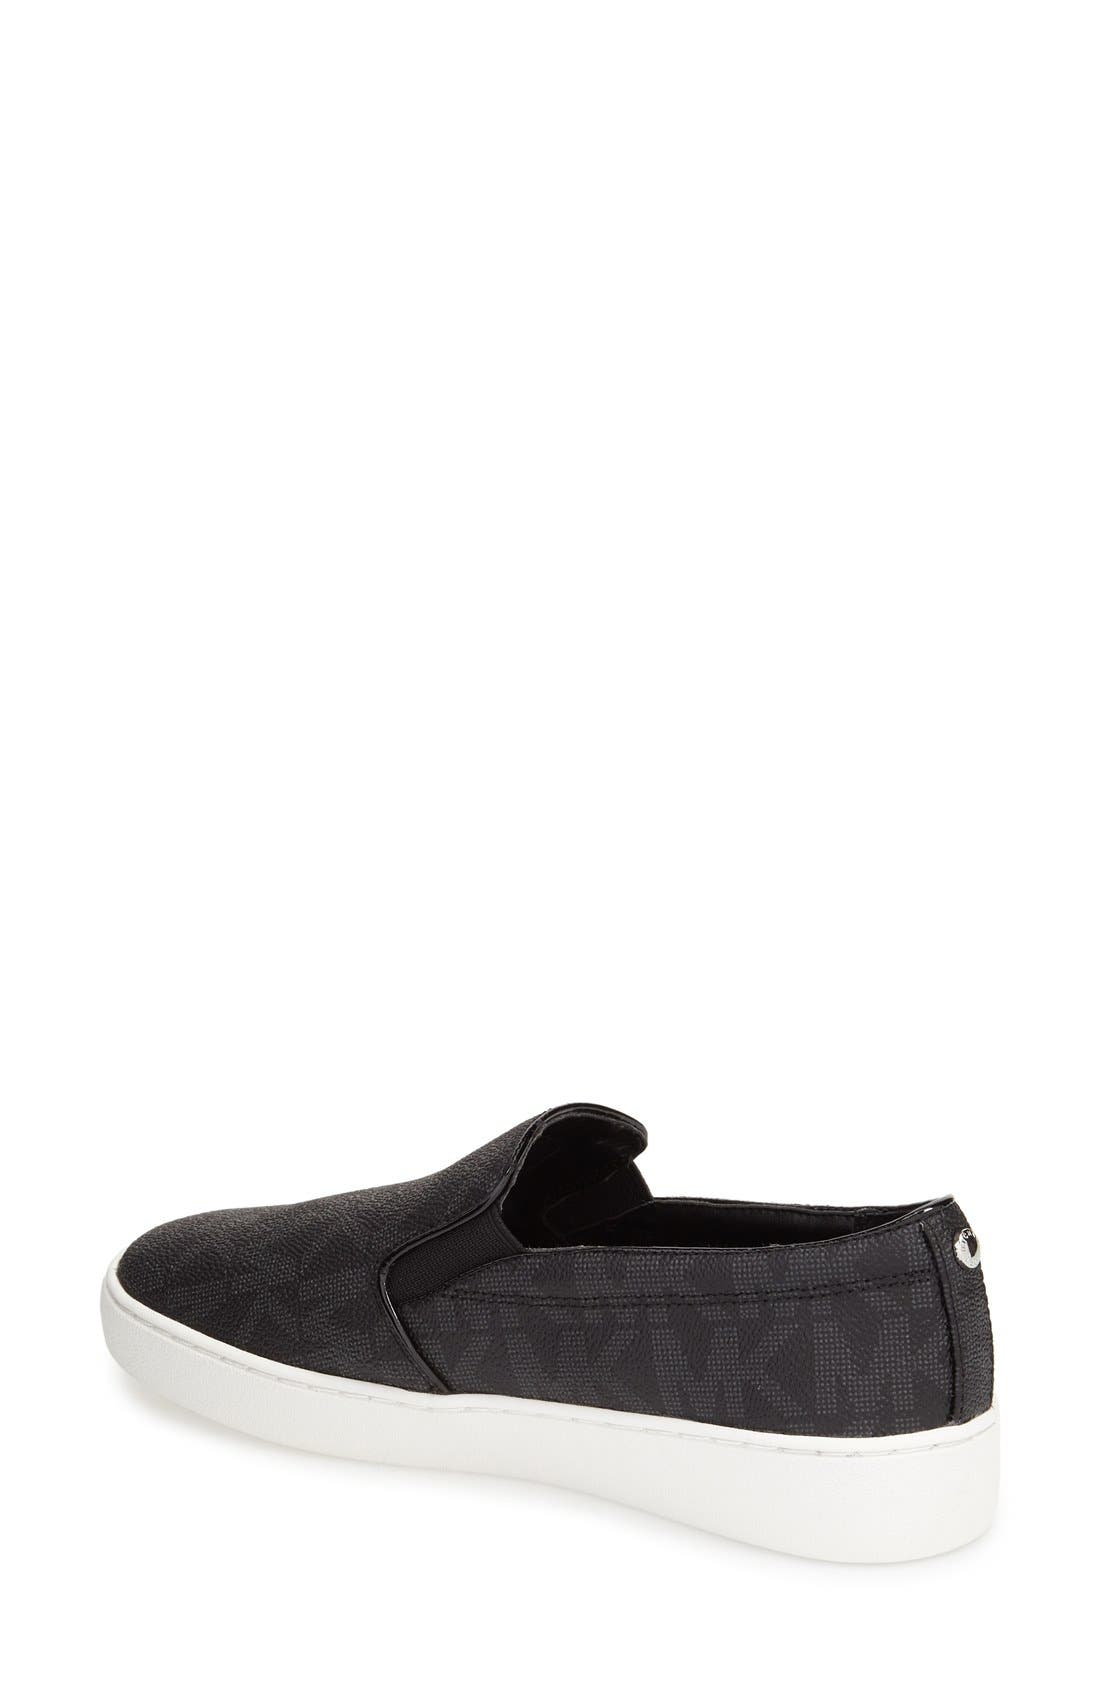 Keaton Slip-On Sneaker,                             Alternate thumbnail 64, color,